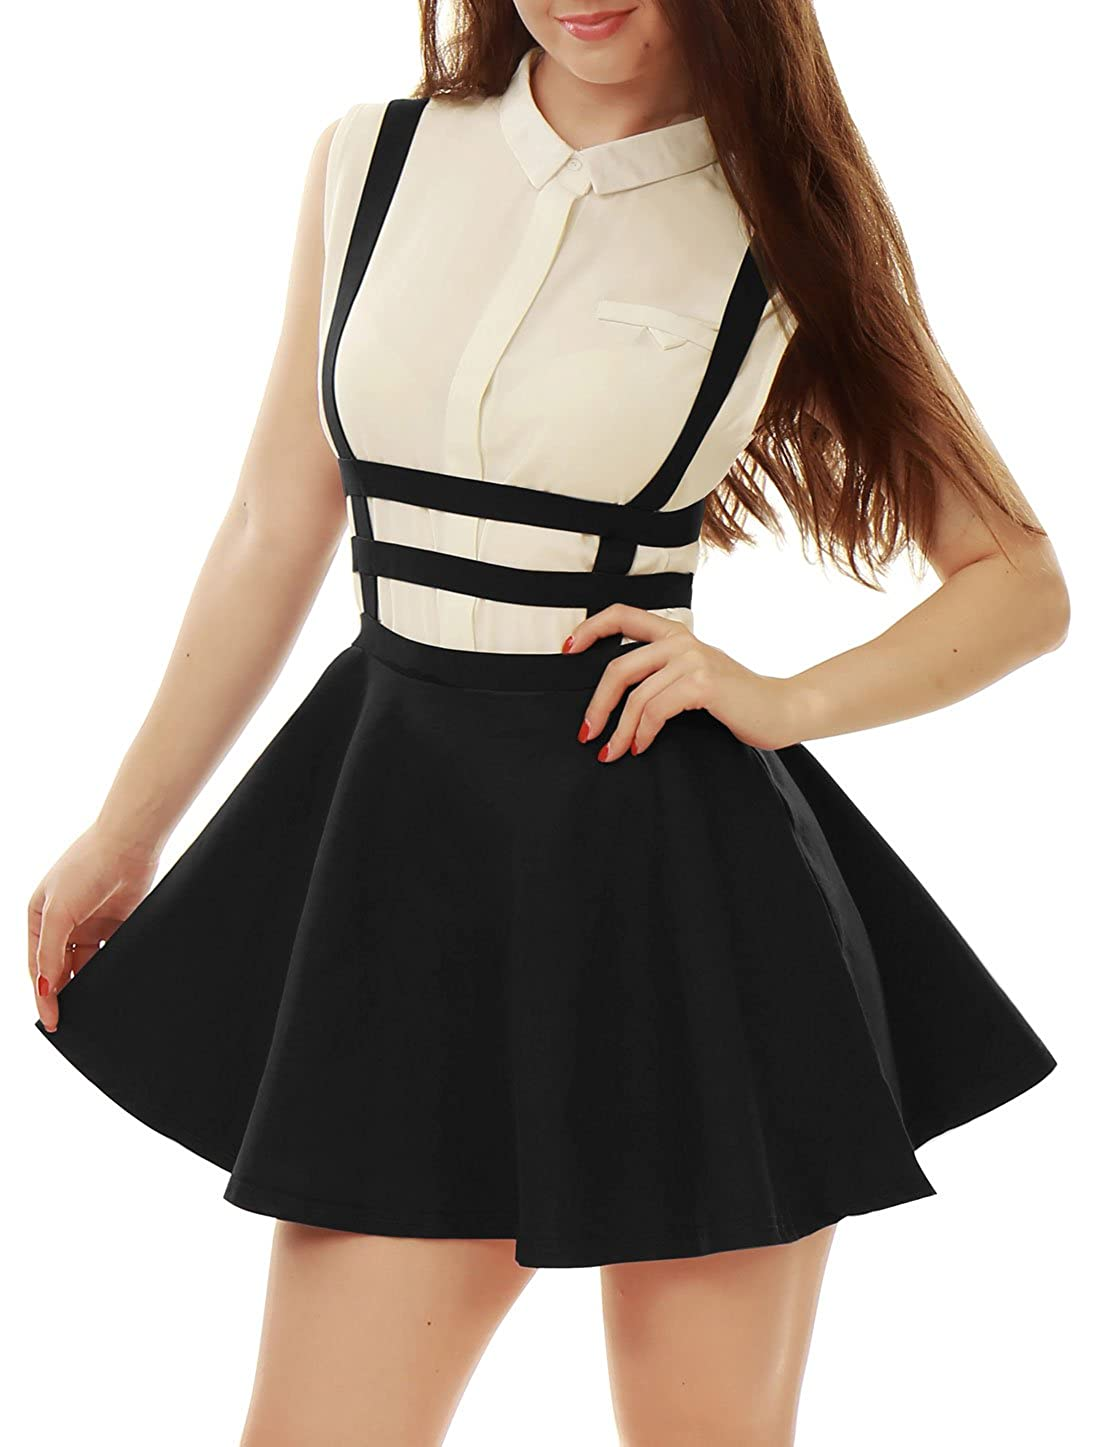 d0afa8eef4ab3 Allegra K Women's Pleated A-Line Elastic Waist Braces Mini Suspender Skirt  at Amazon Women's Clothing store: